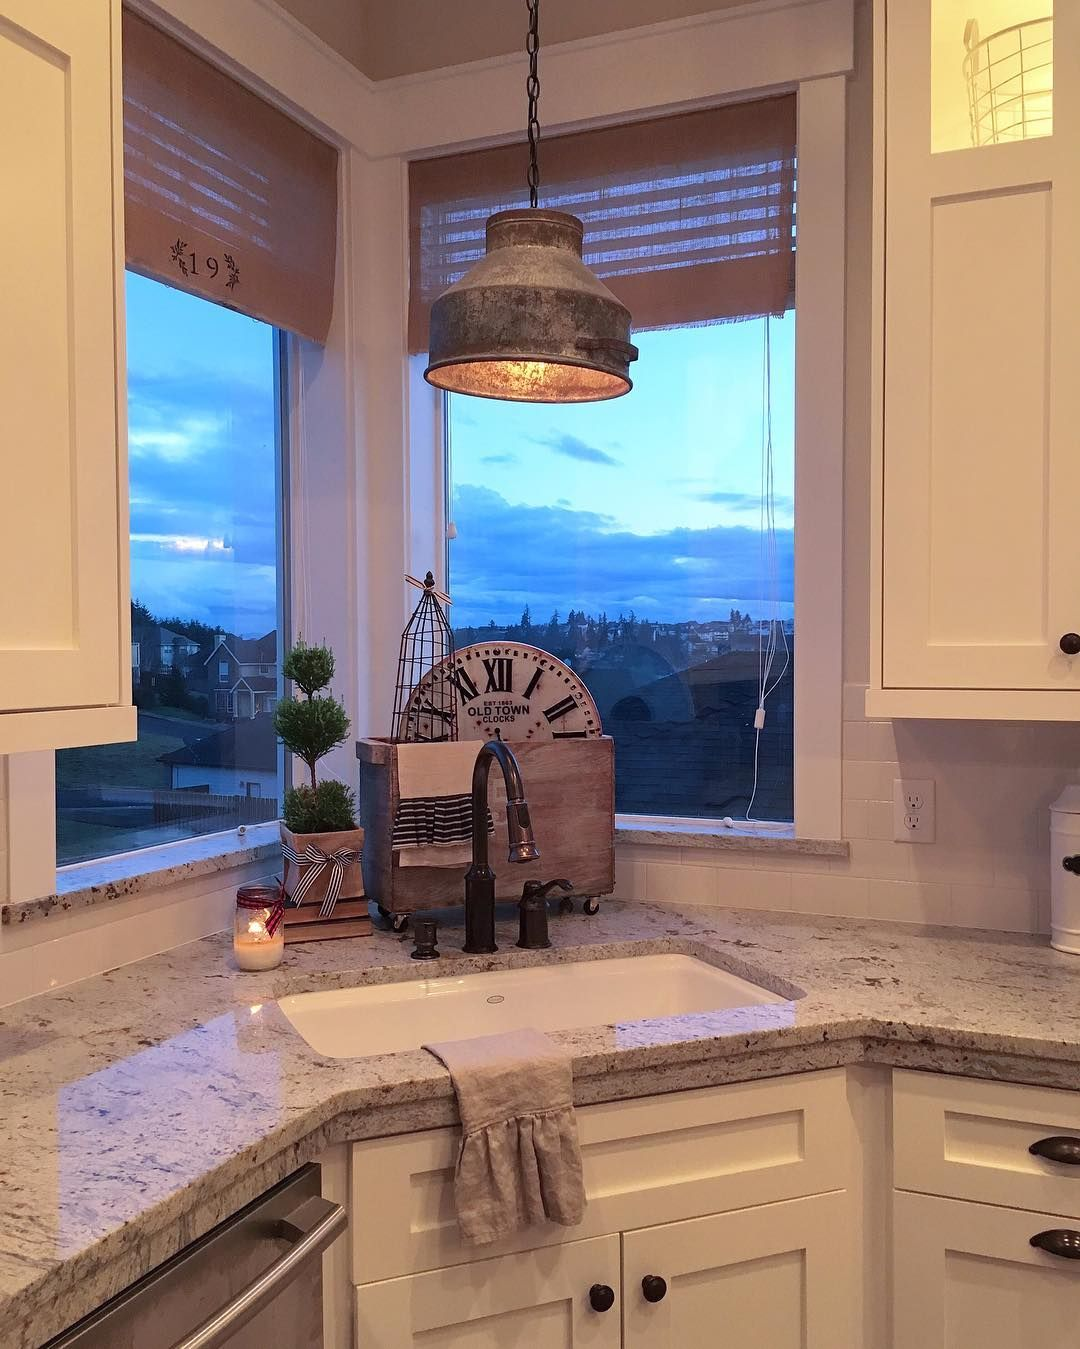 Pin By K Ray On Cozy Cottage Kitchens Kitchen Sink Window Corner Sink Corner Sink Kitchen